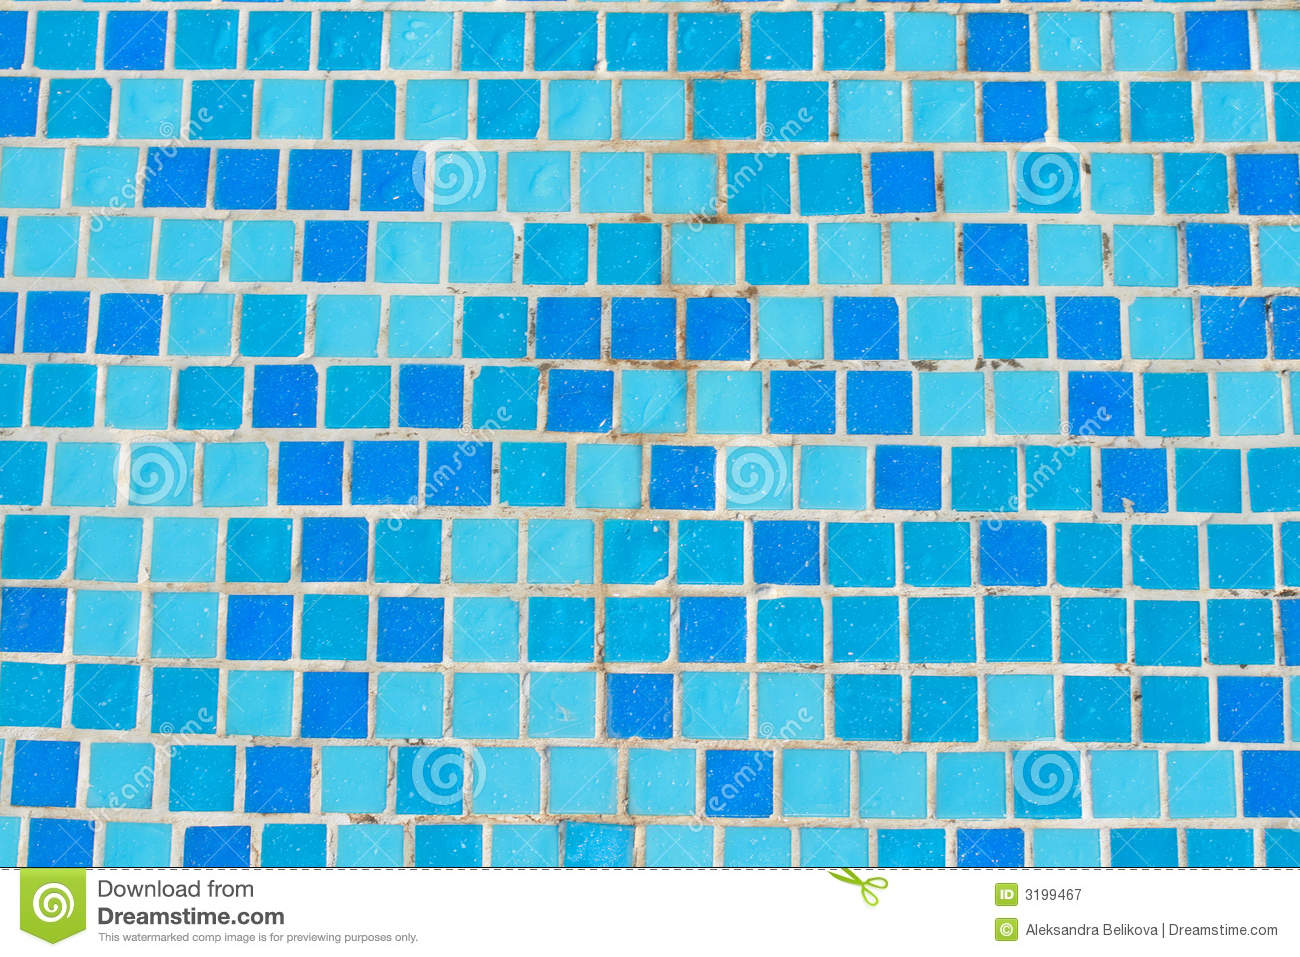 special-inspiration-mosaic-tile-pool